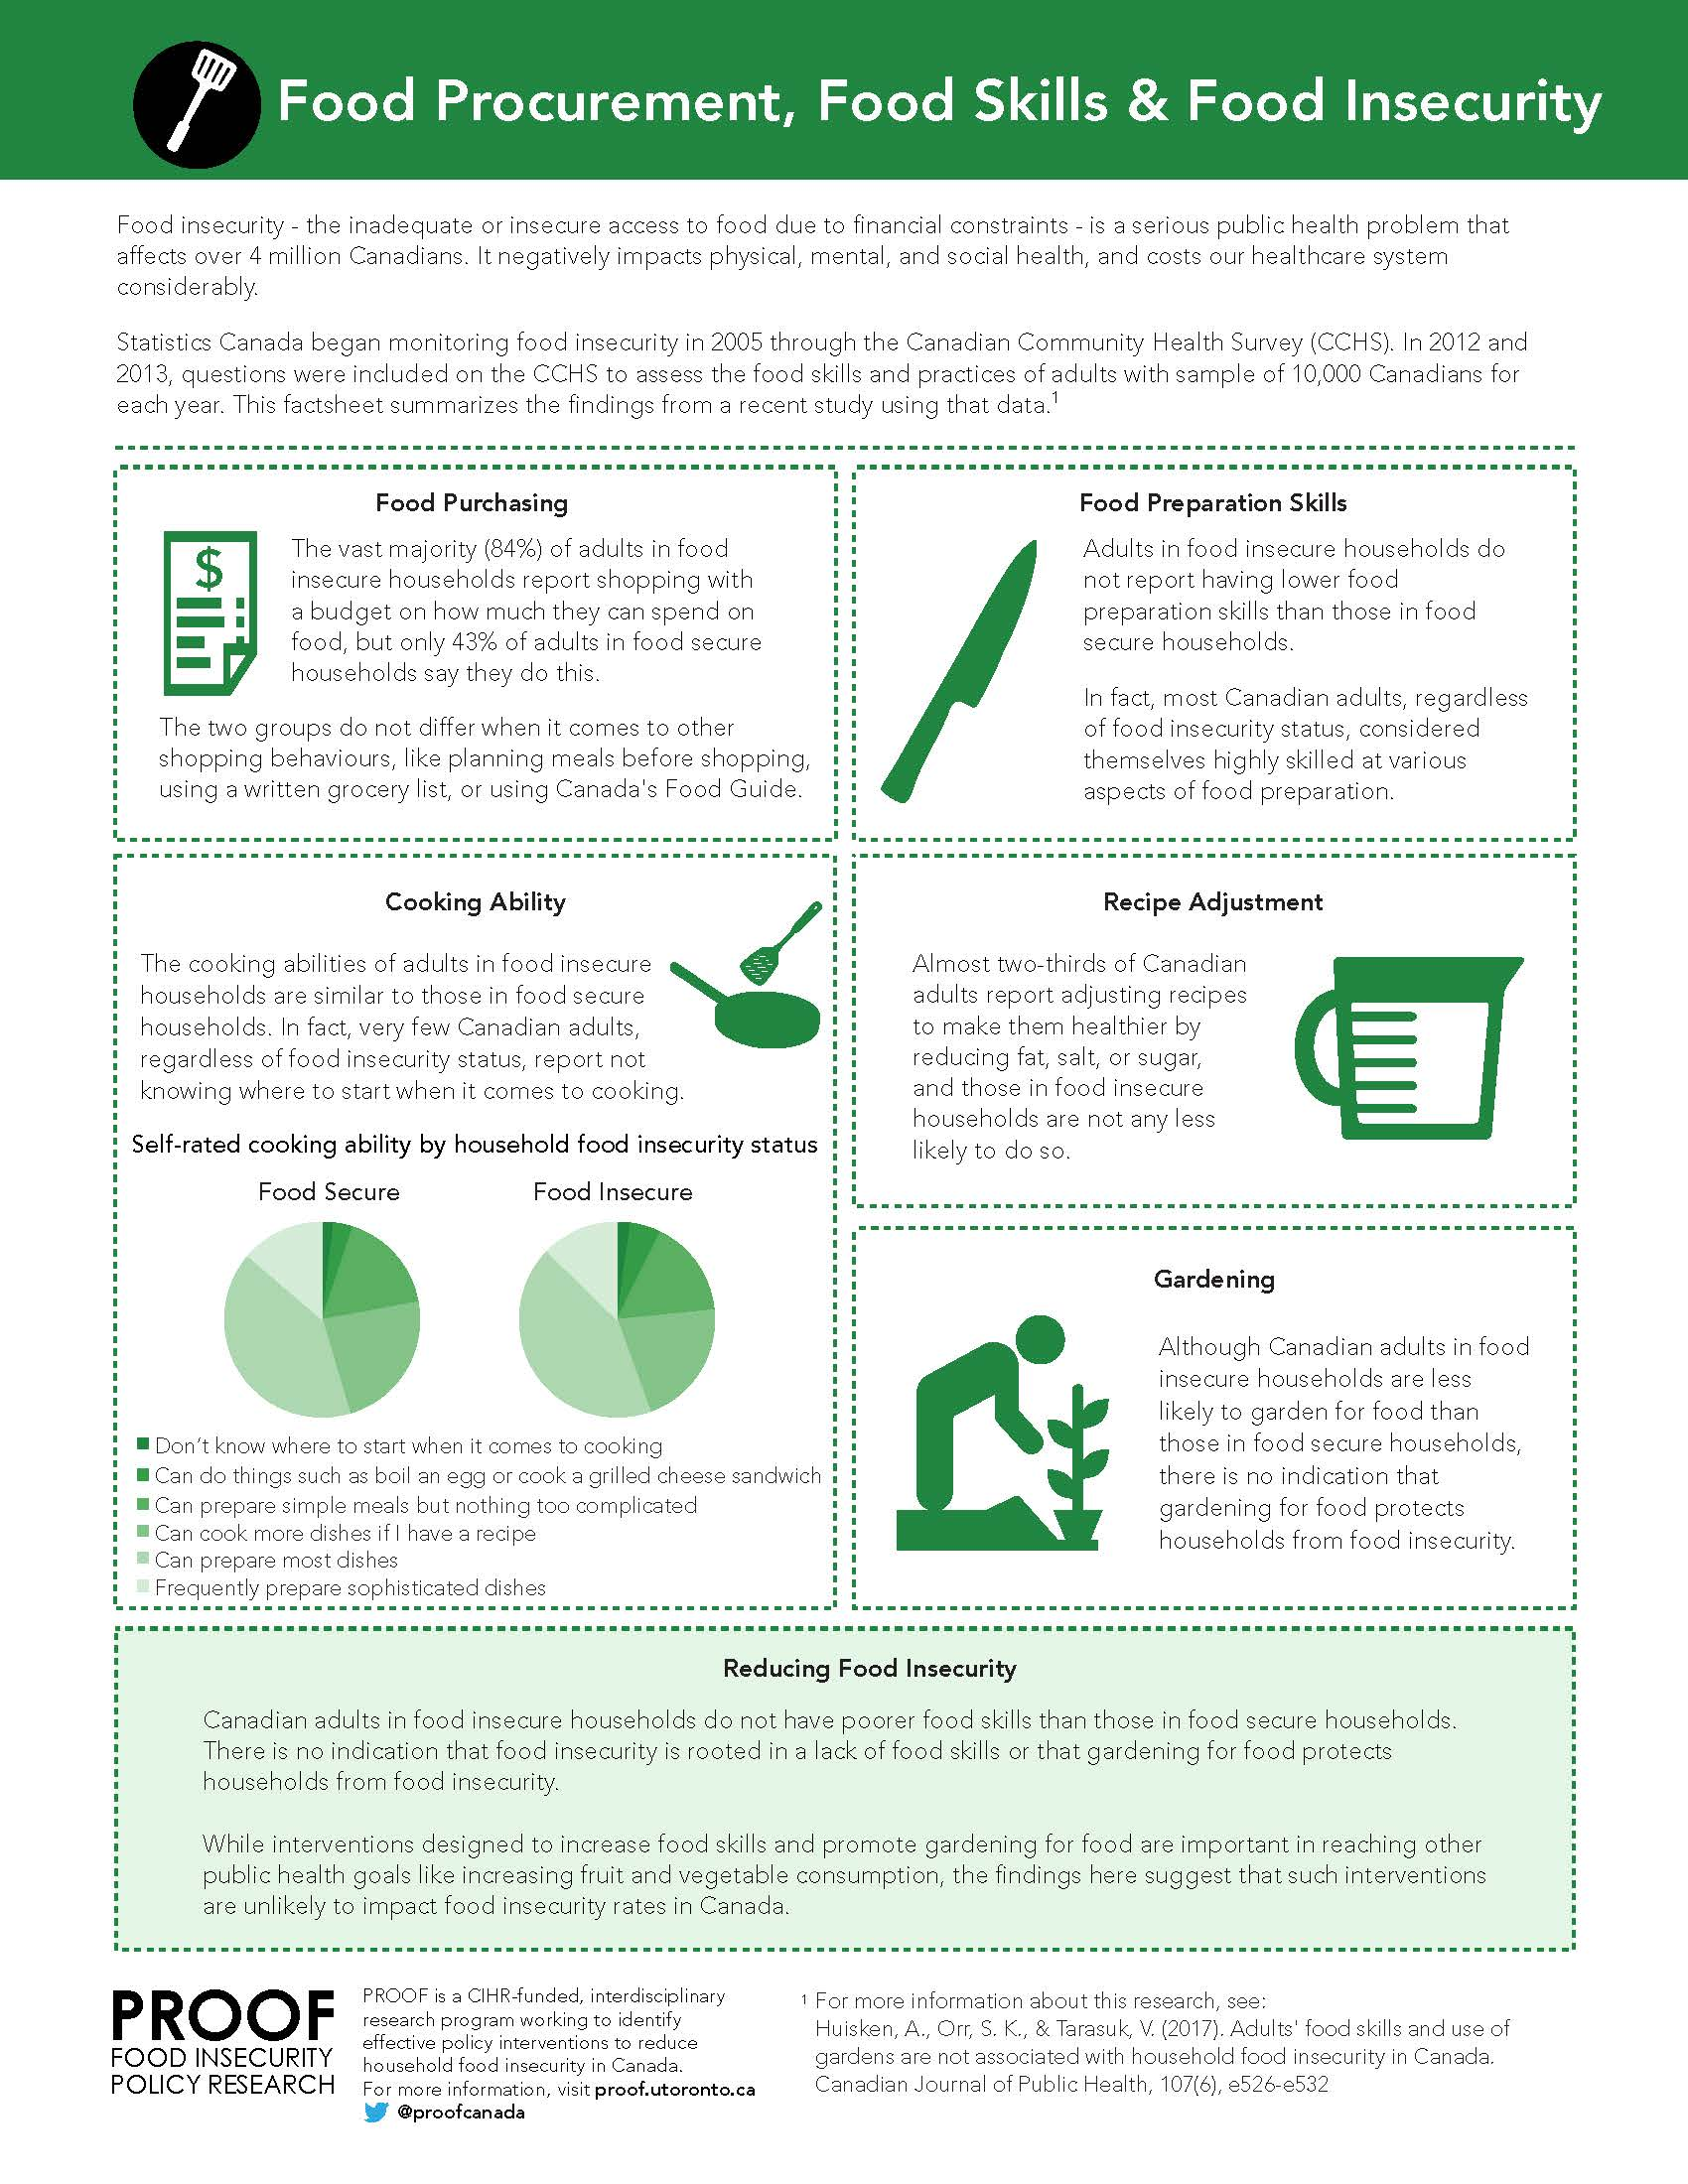 Food procurement, food skills & food insecurity factsheet